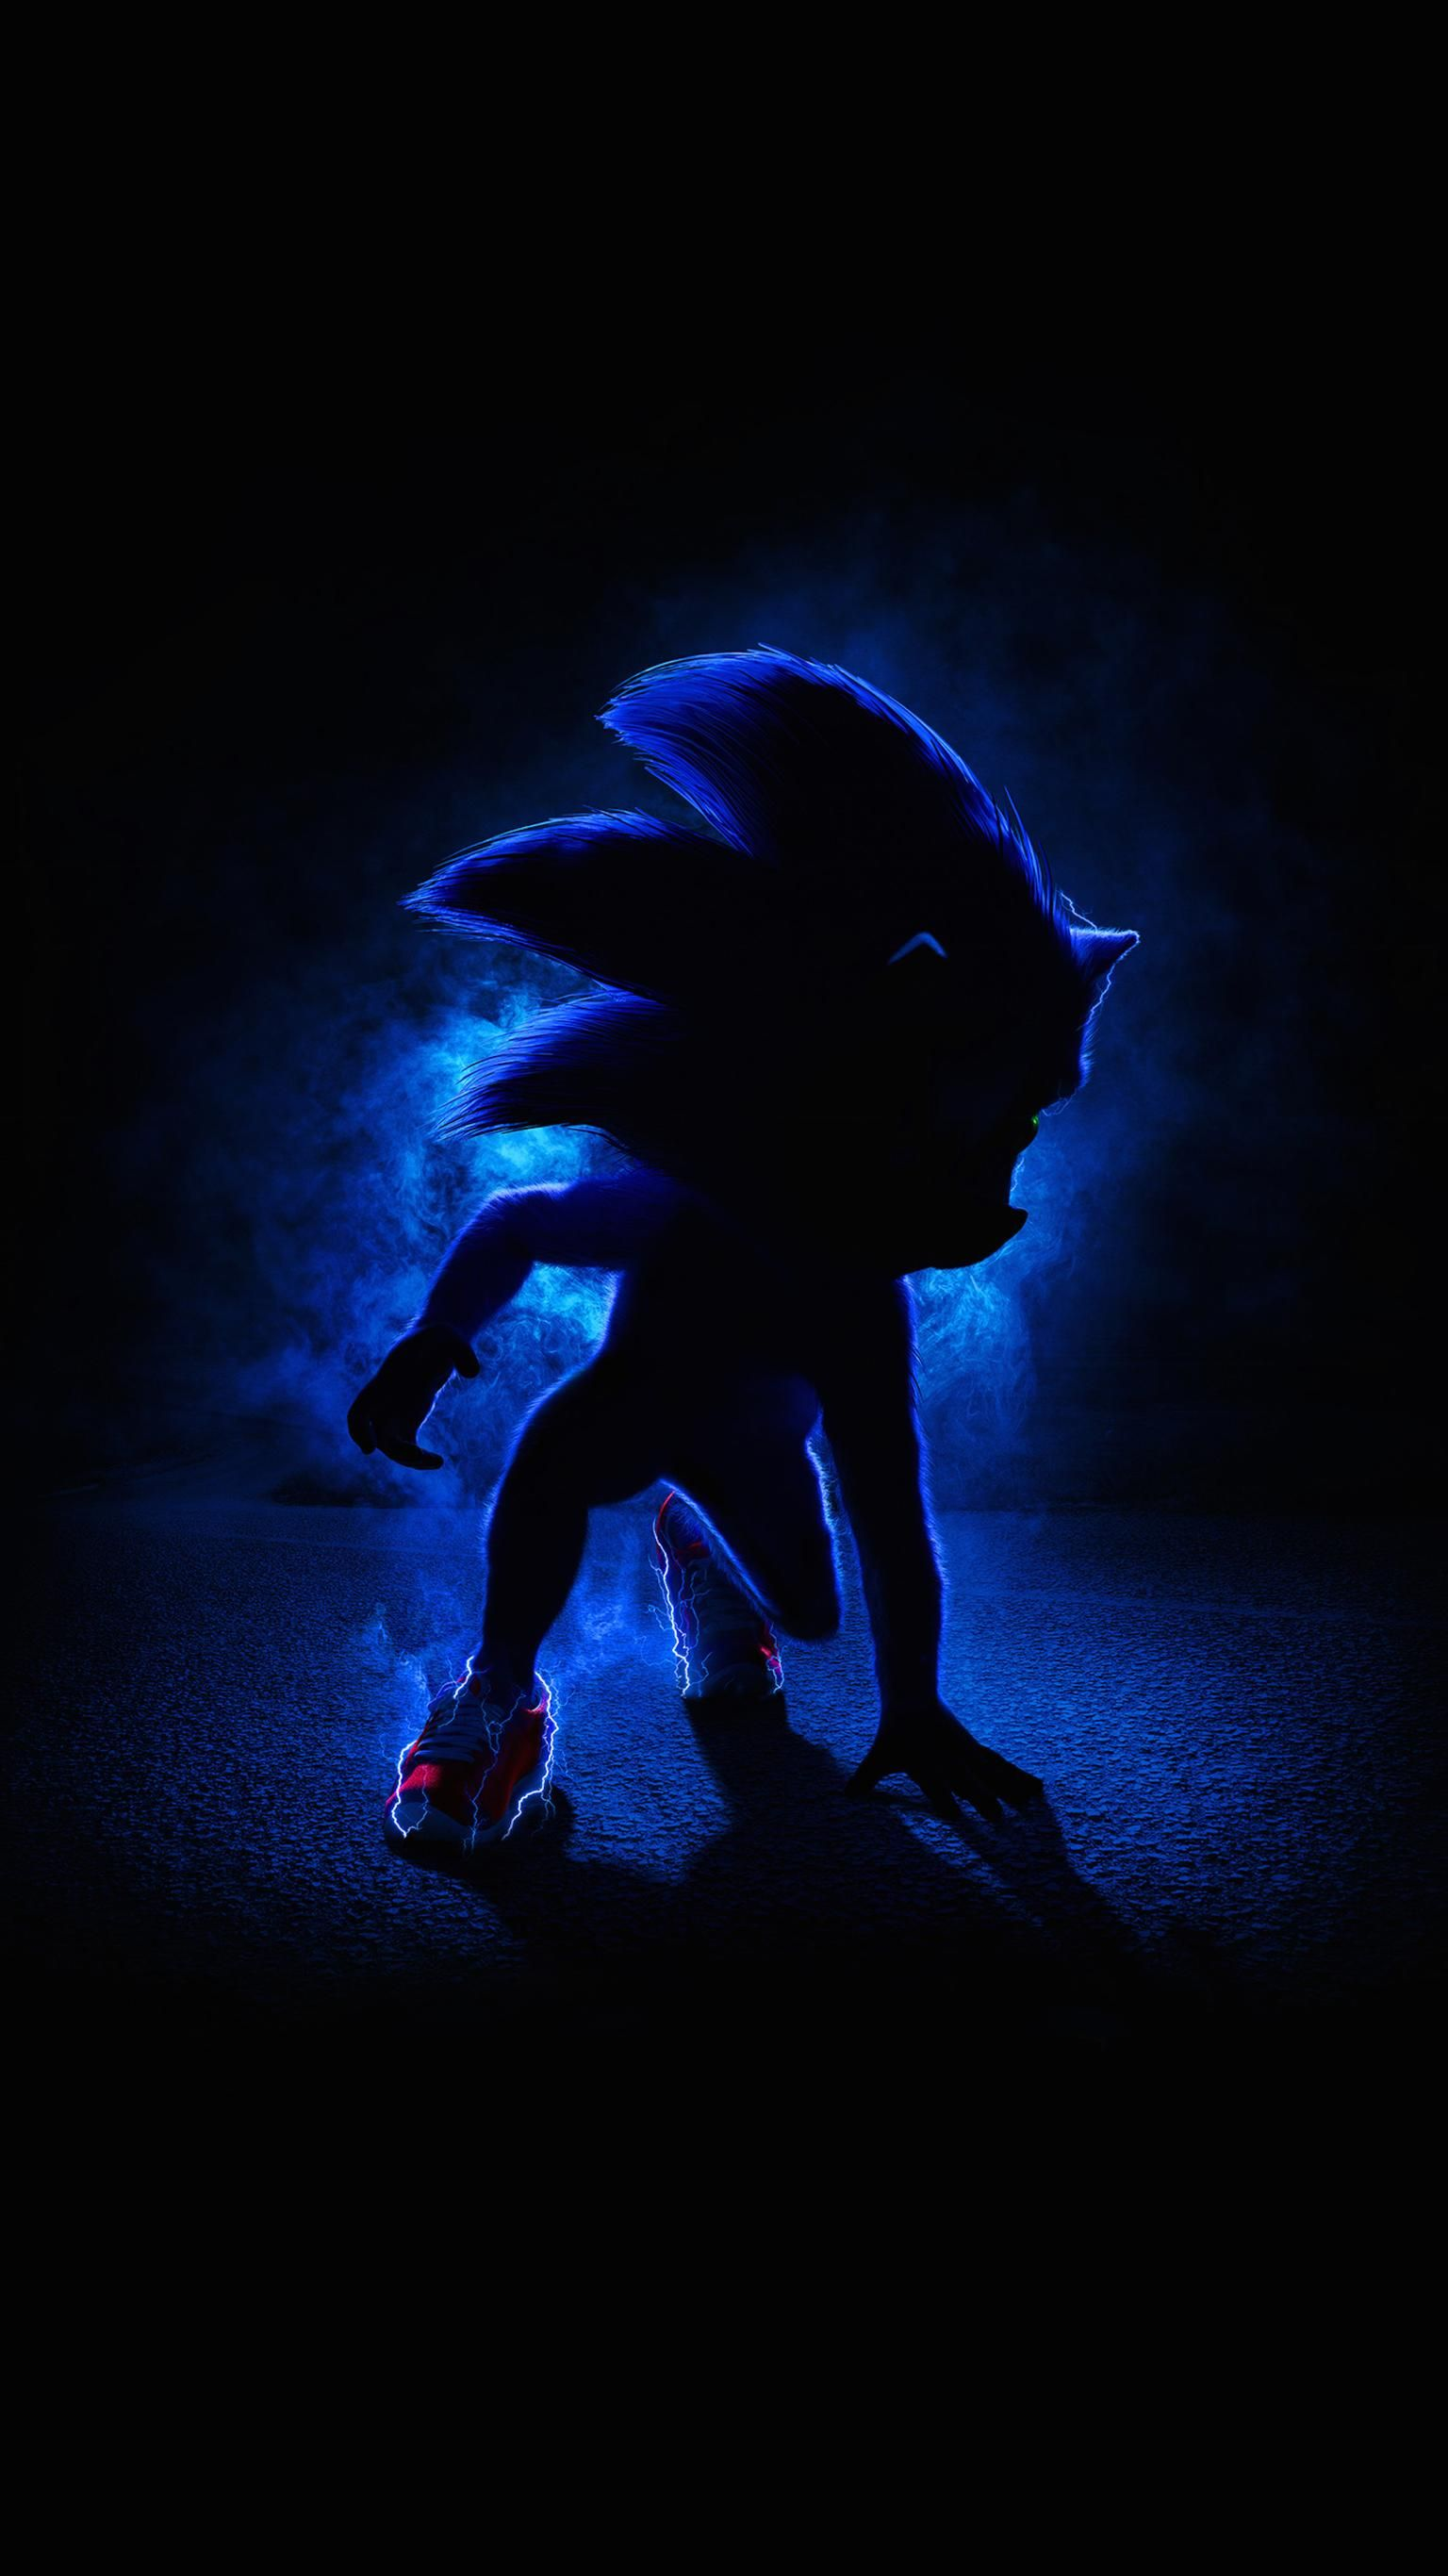 Sonic The Hedgehog 2020 Phone Wallpaper Moviemania Hedgehog Movie Sonic The Movie Movie Wallpapers